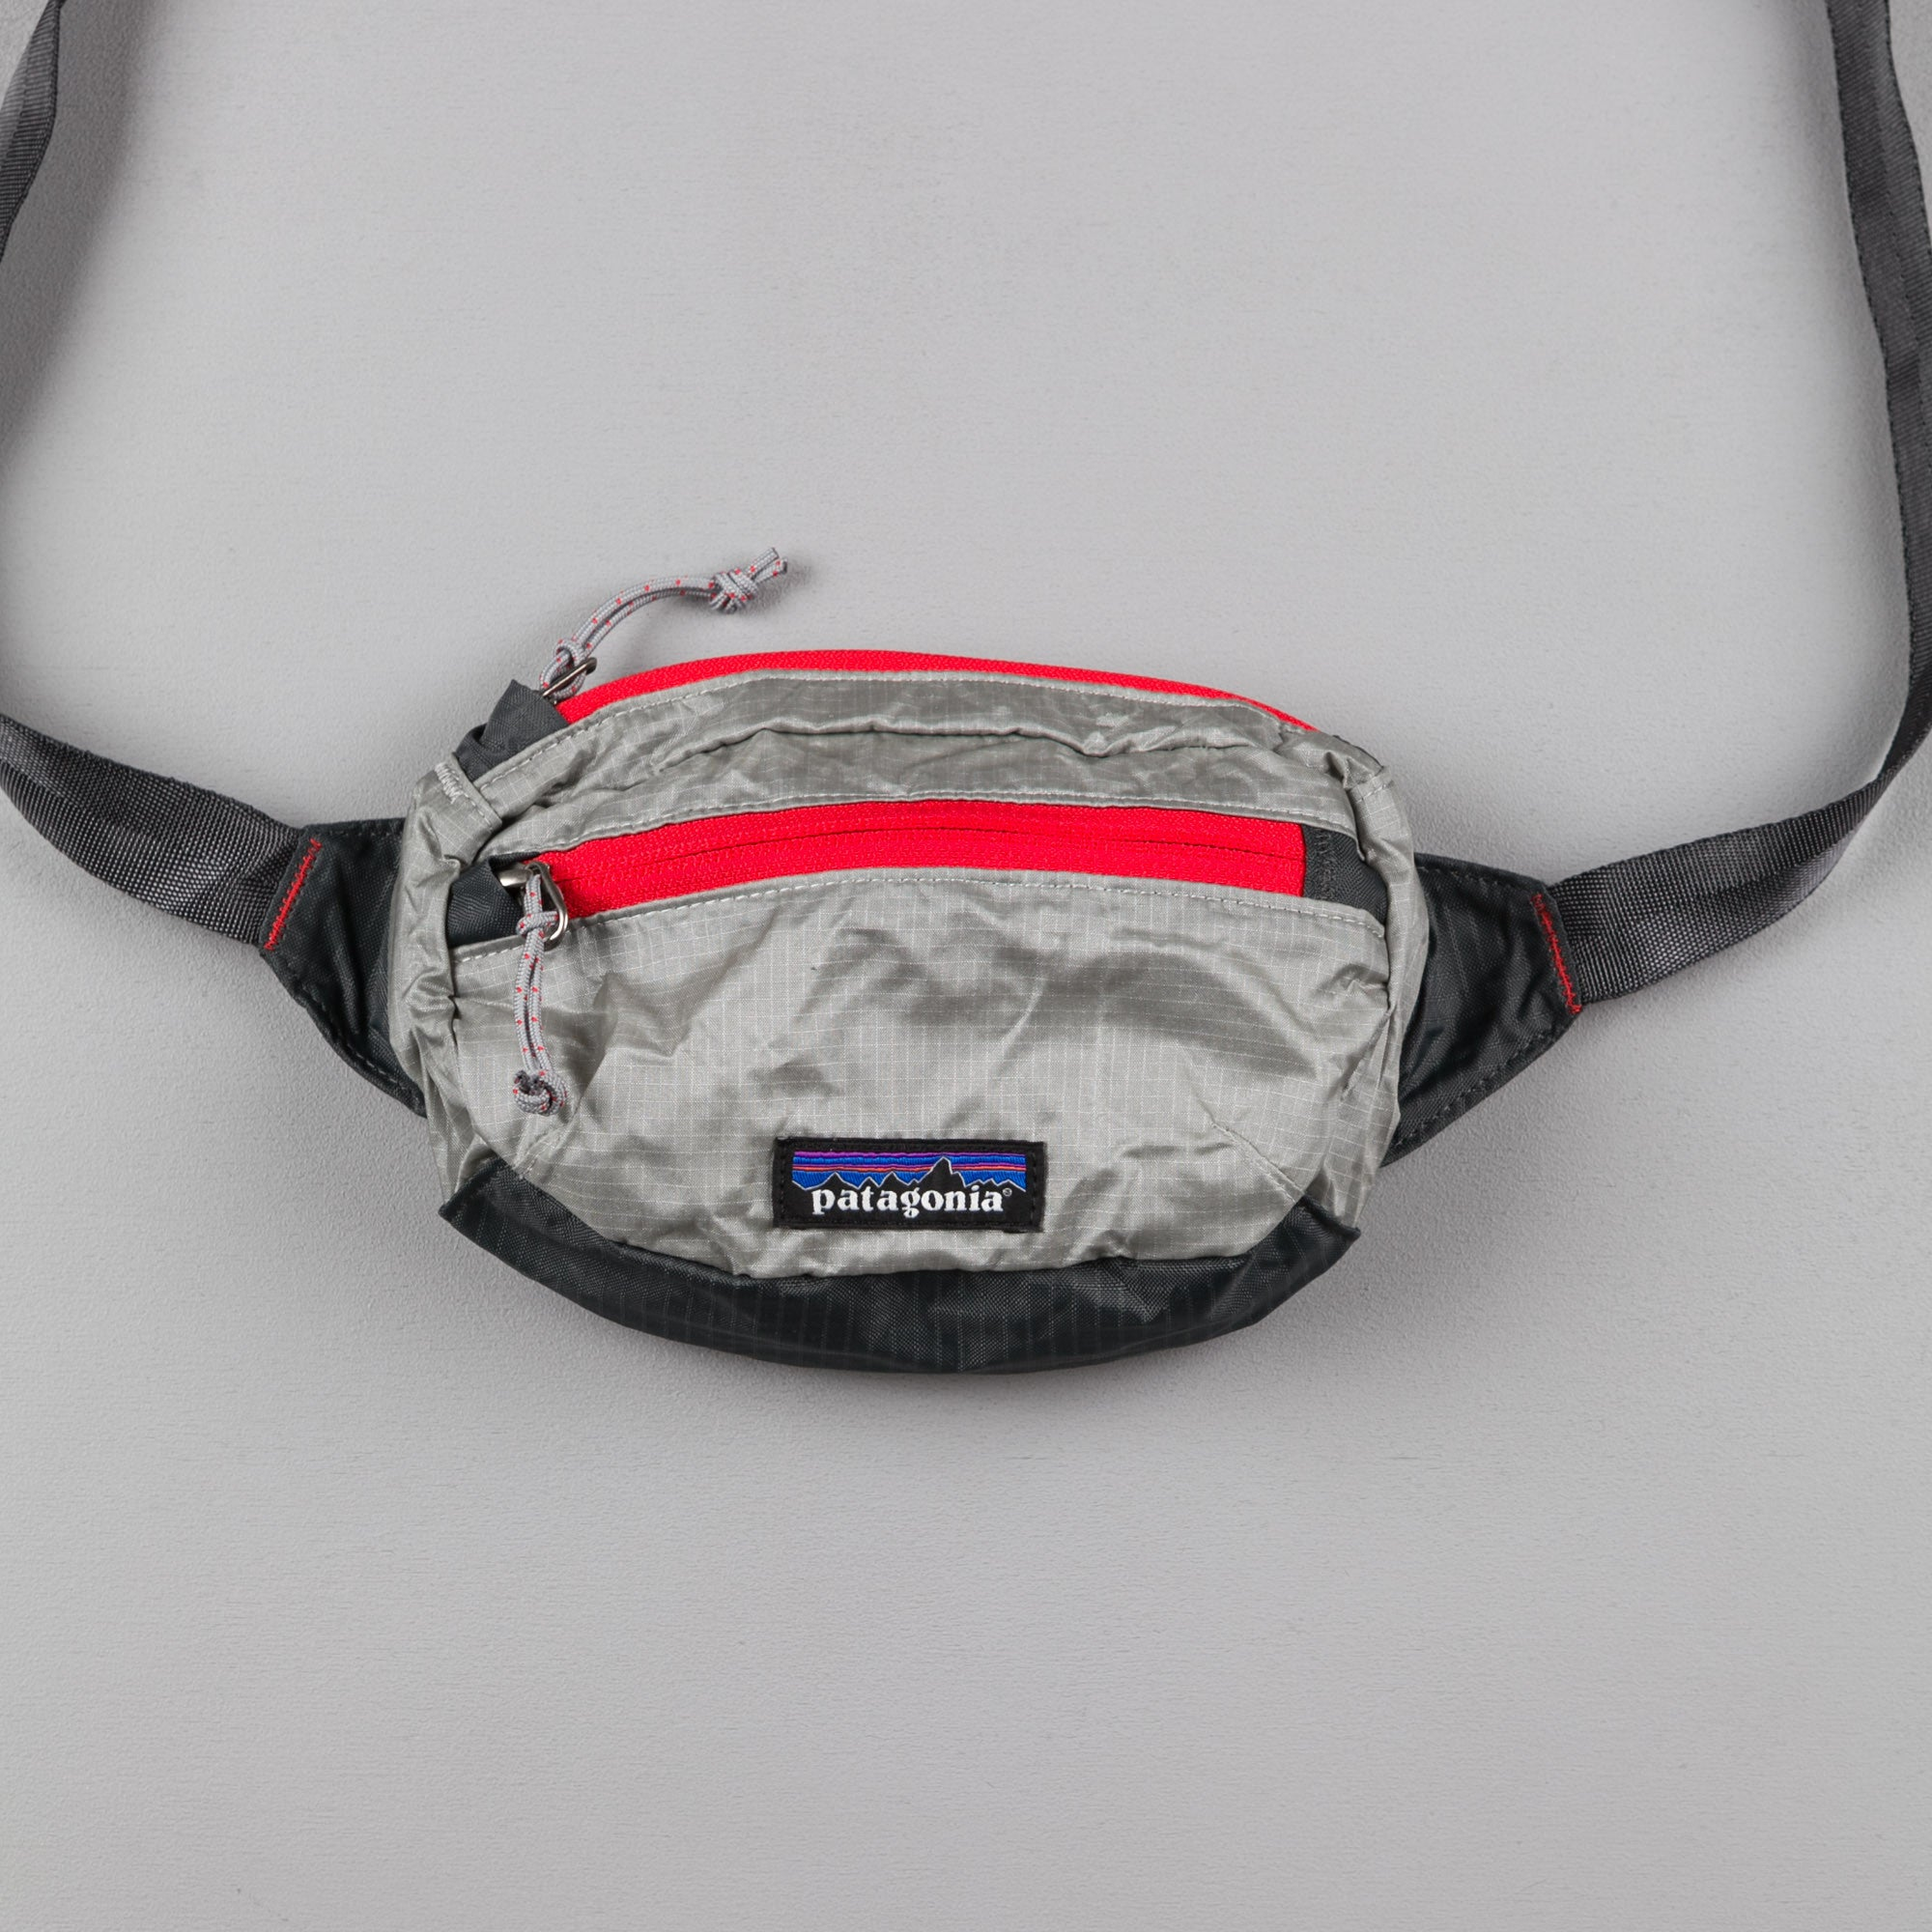 Patagonia Lightweight Travel Mini Hip Pack - Drifter Grey